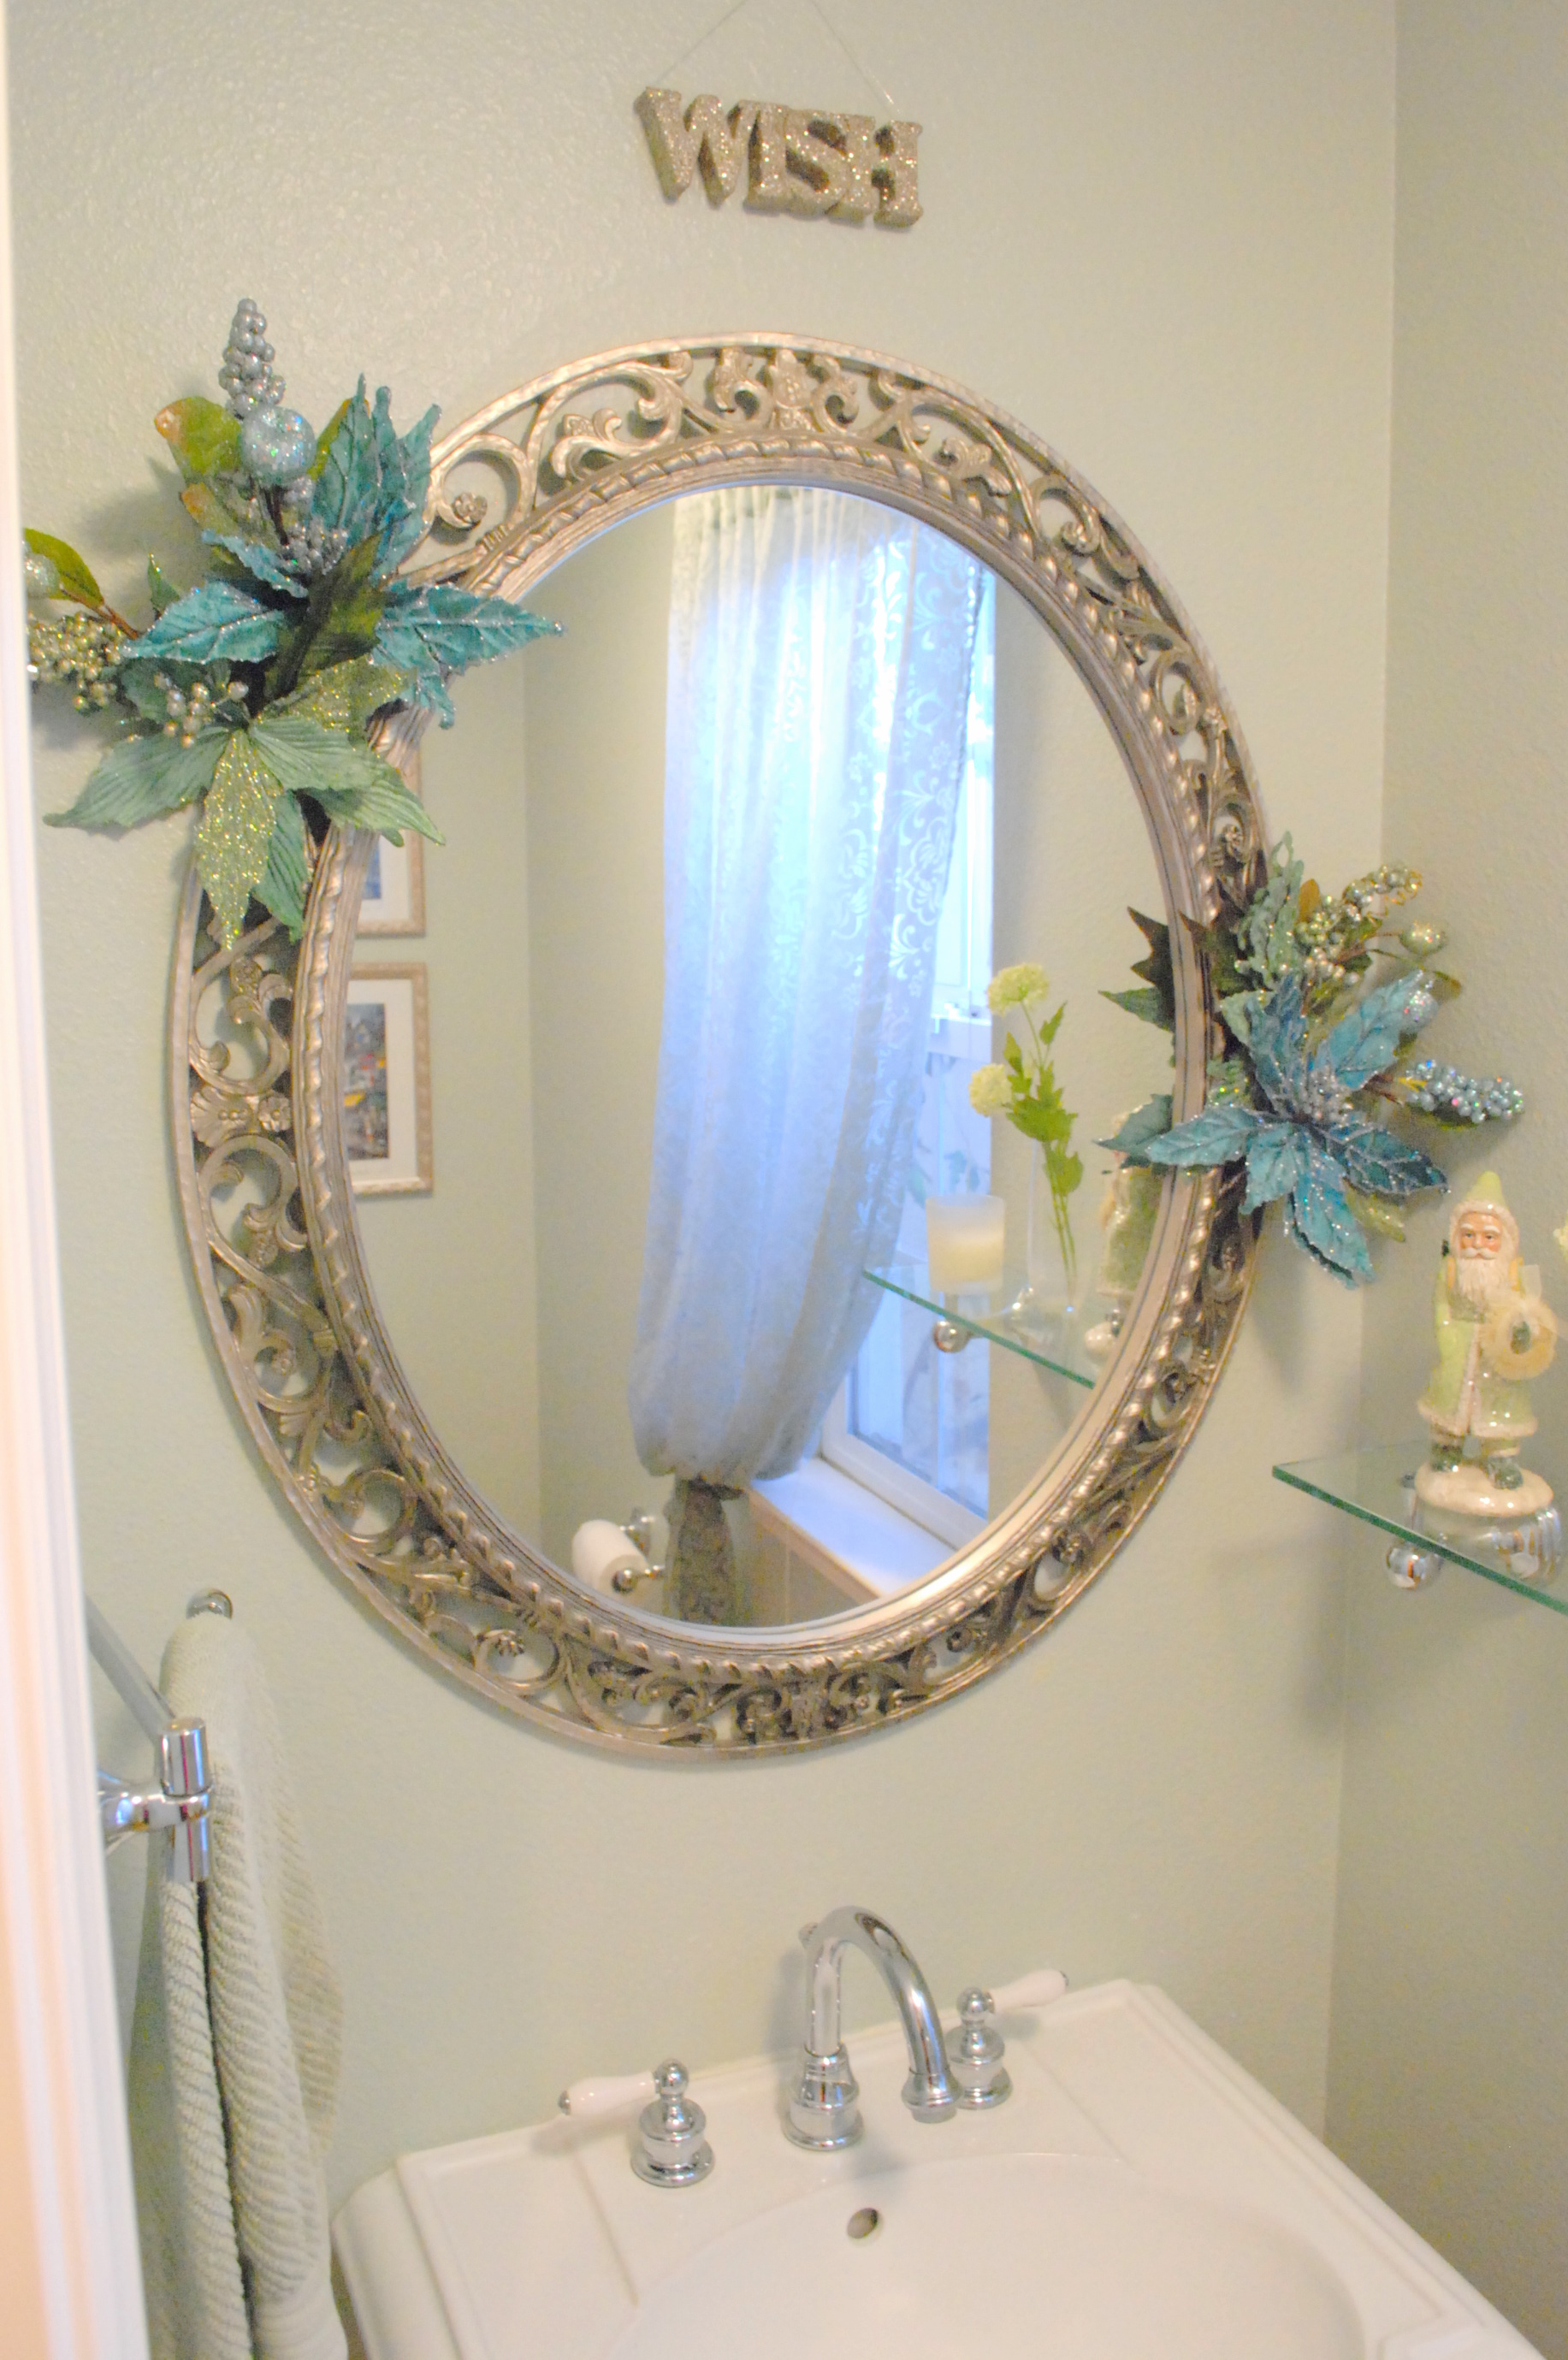 Mirror decorations ideas mirror decorations ideas amusing mirror decorating ideas interior - Decorating bathroom mirrors ideas ...